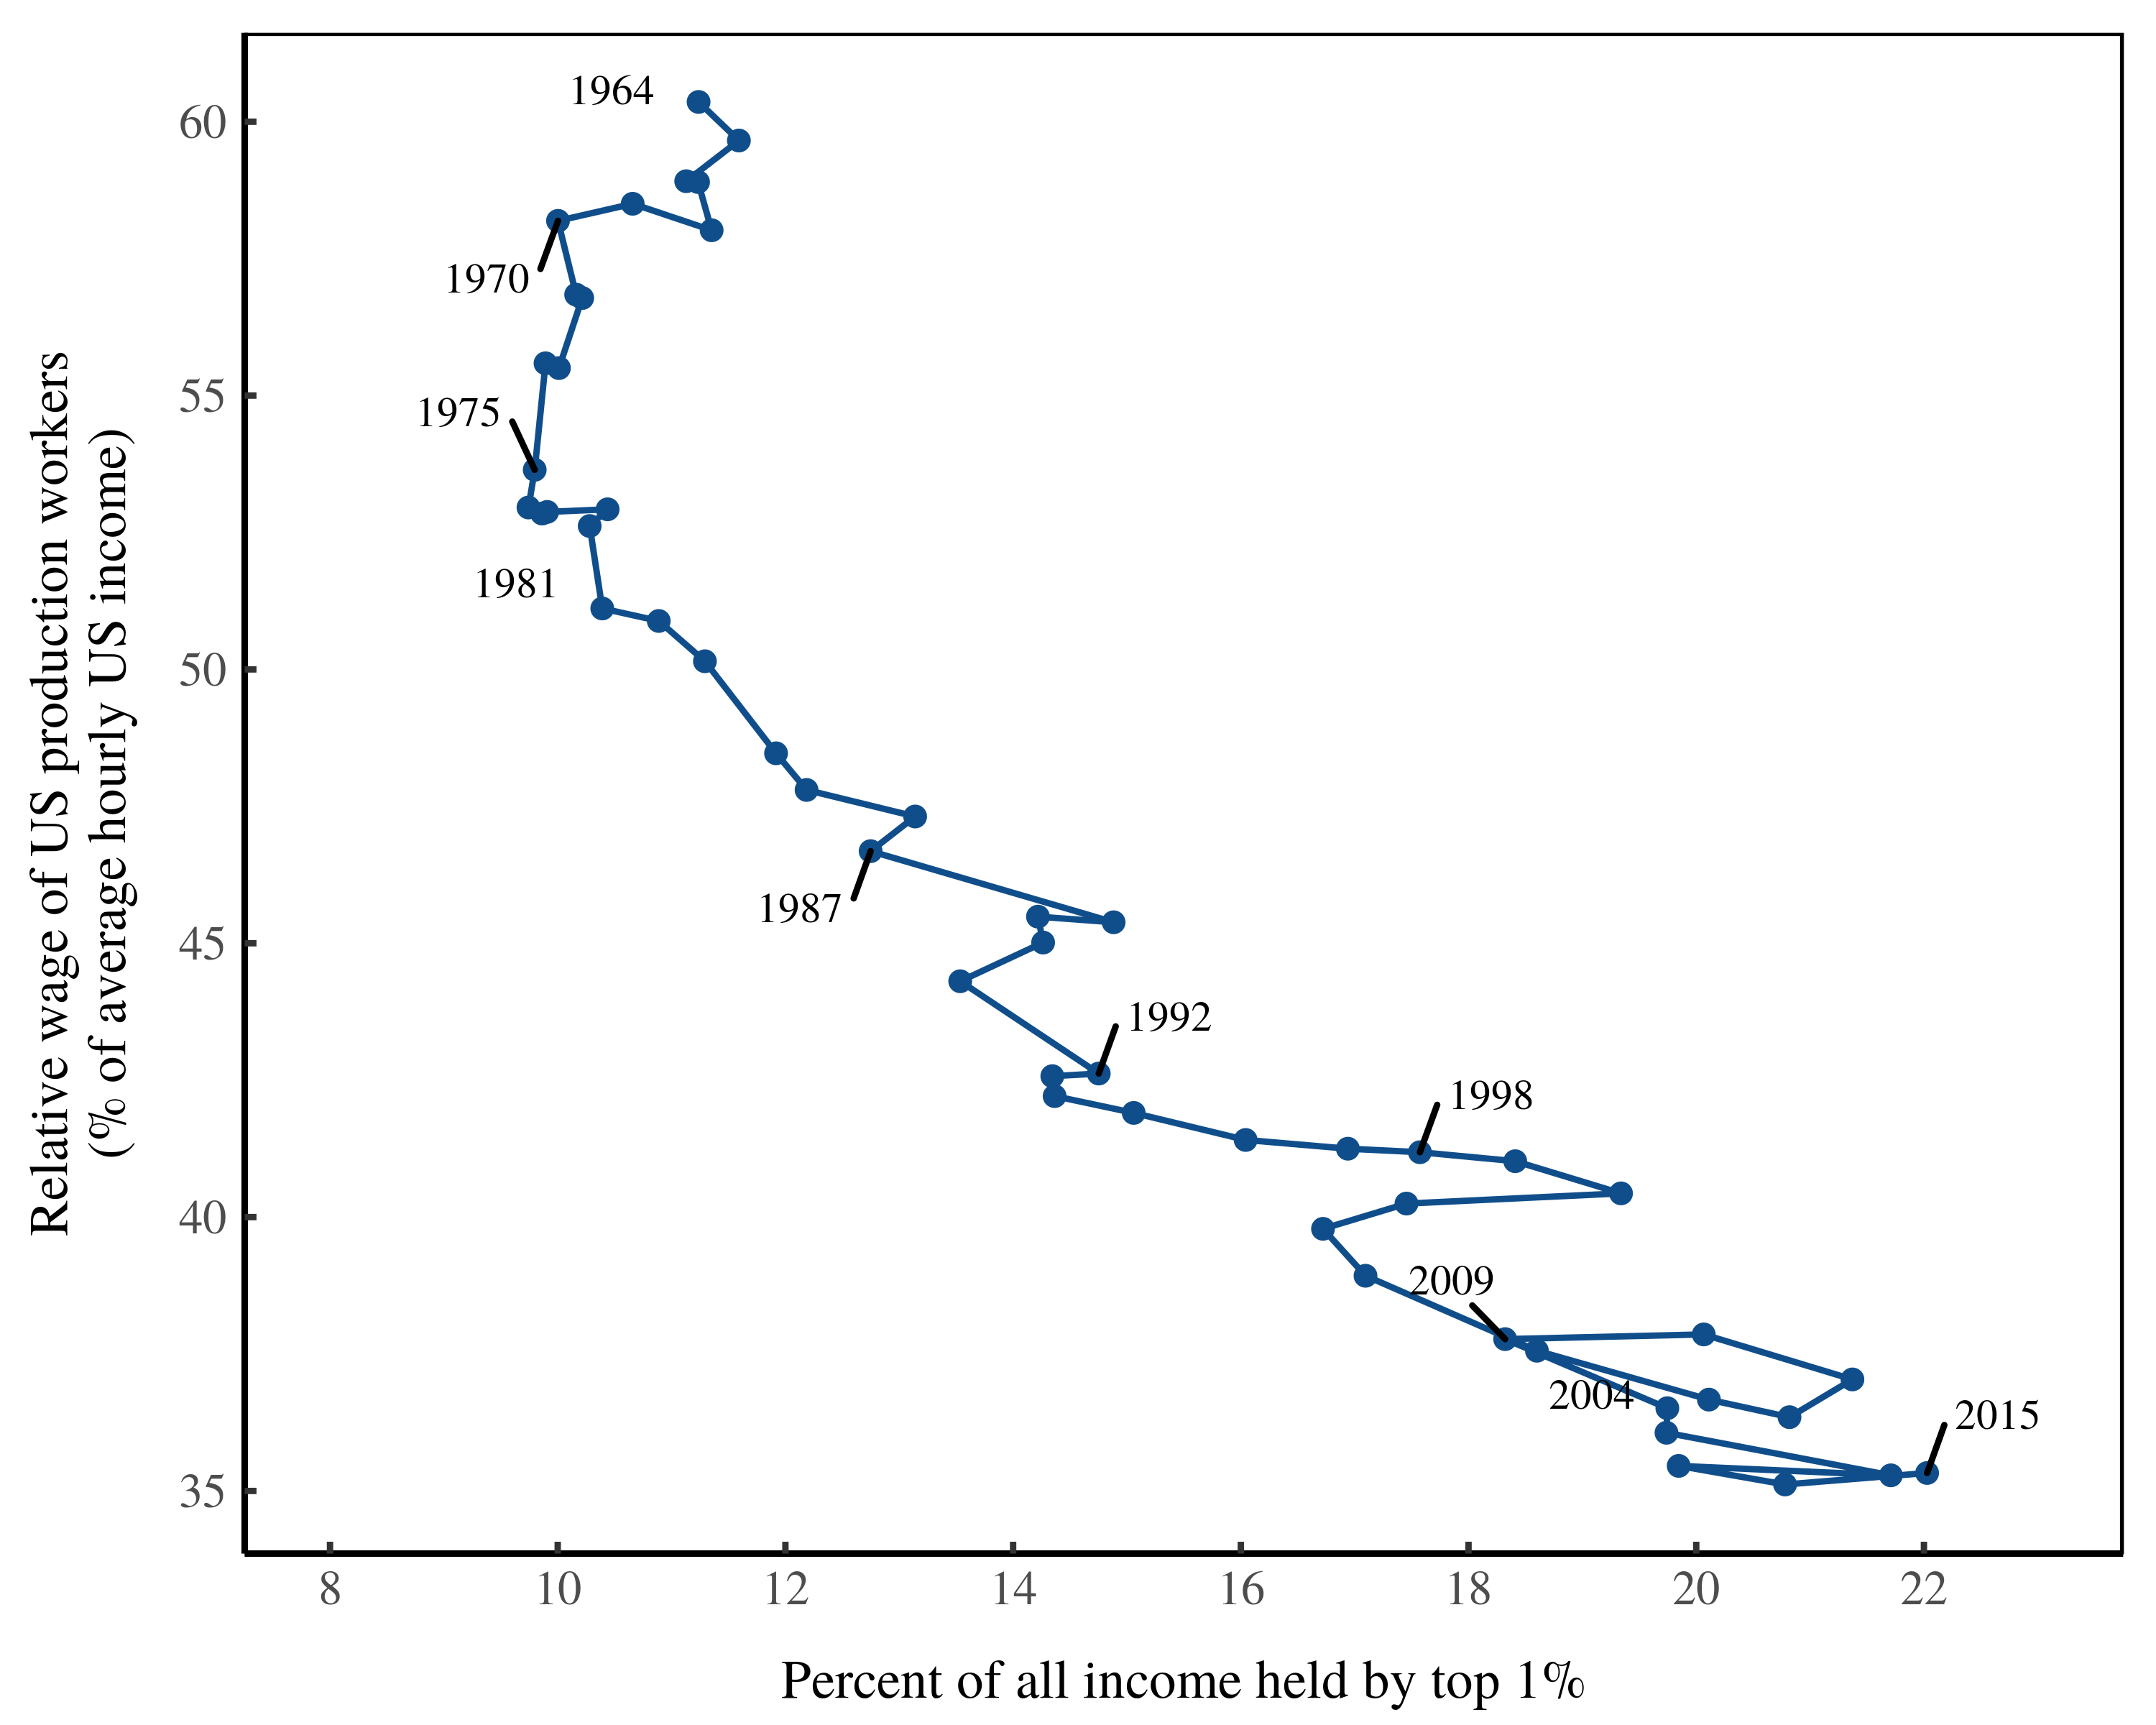 differential_income_top1